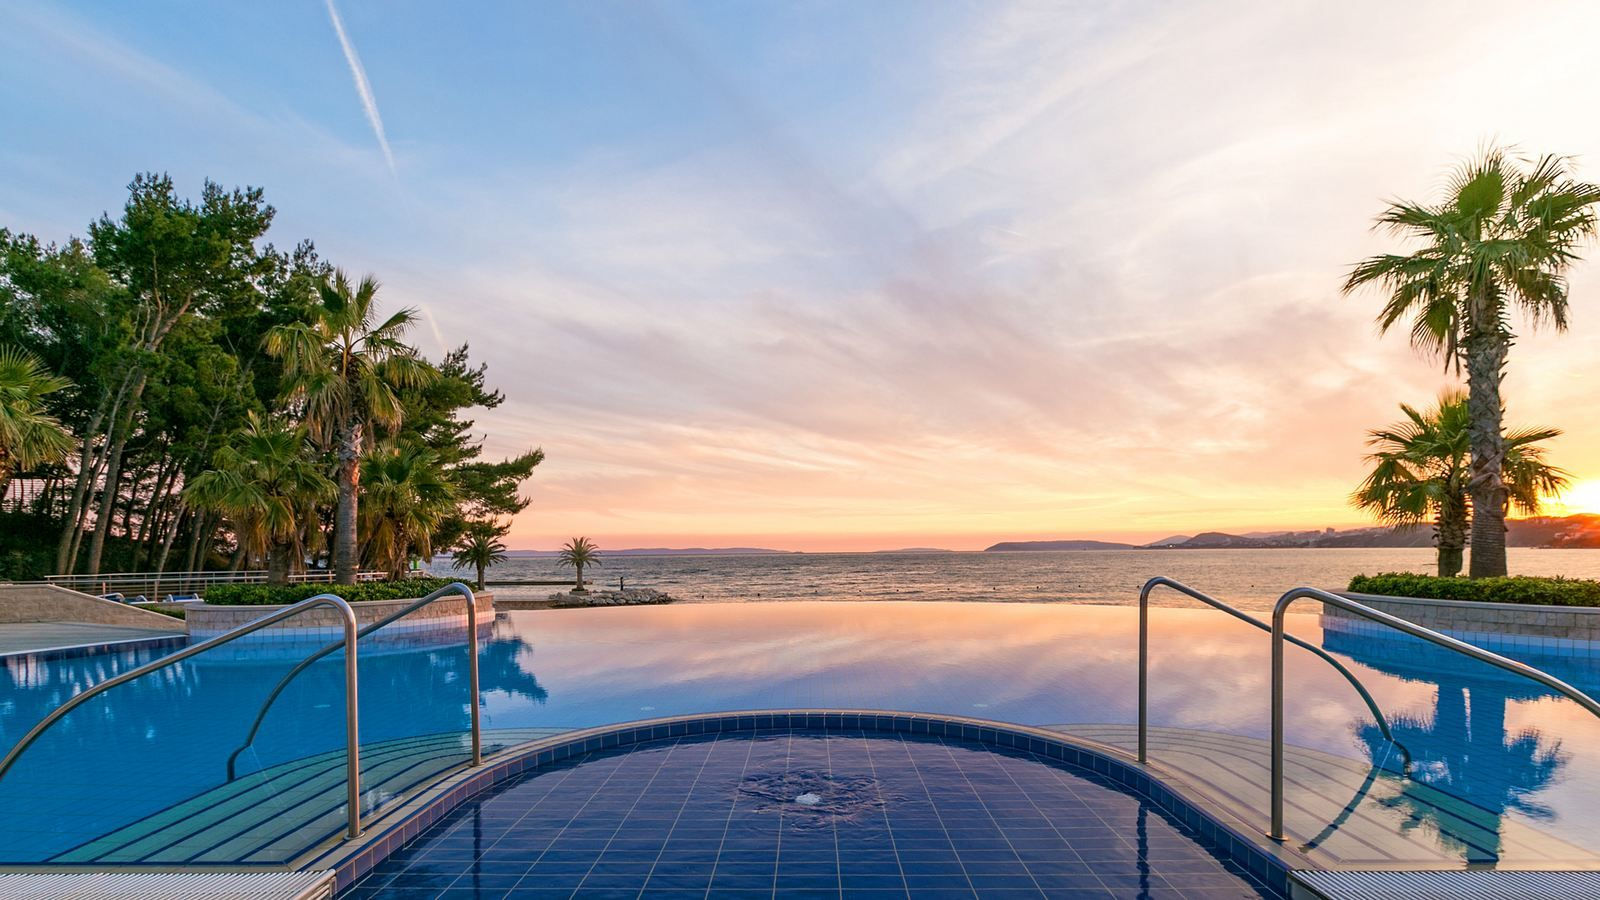 Take in the view at Infinity Pool